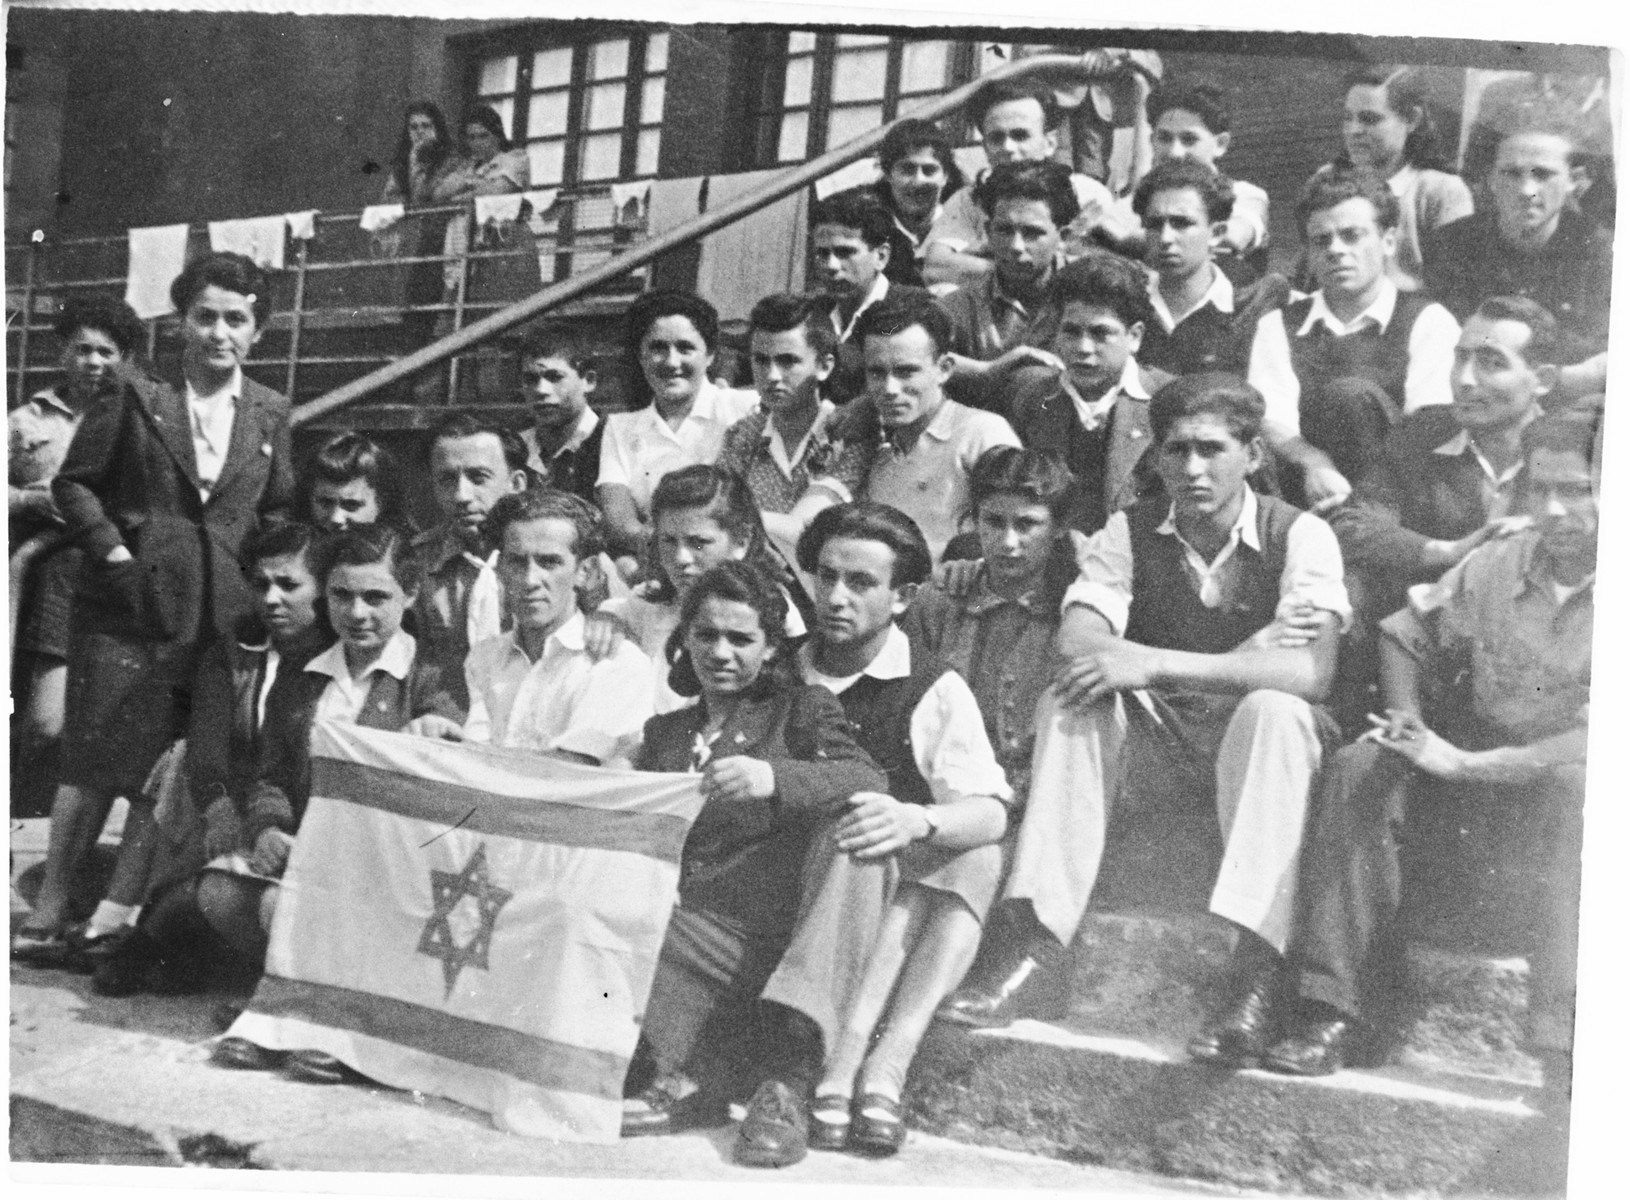 A group of teenagers poses of the steps of the Selvino children's home with an Israeli flag.